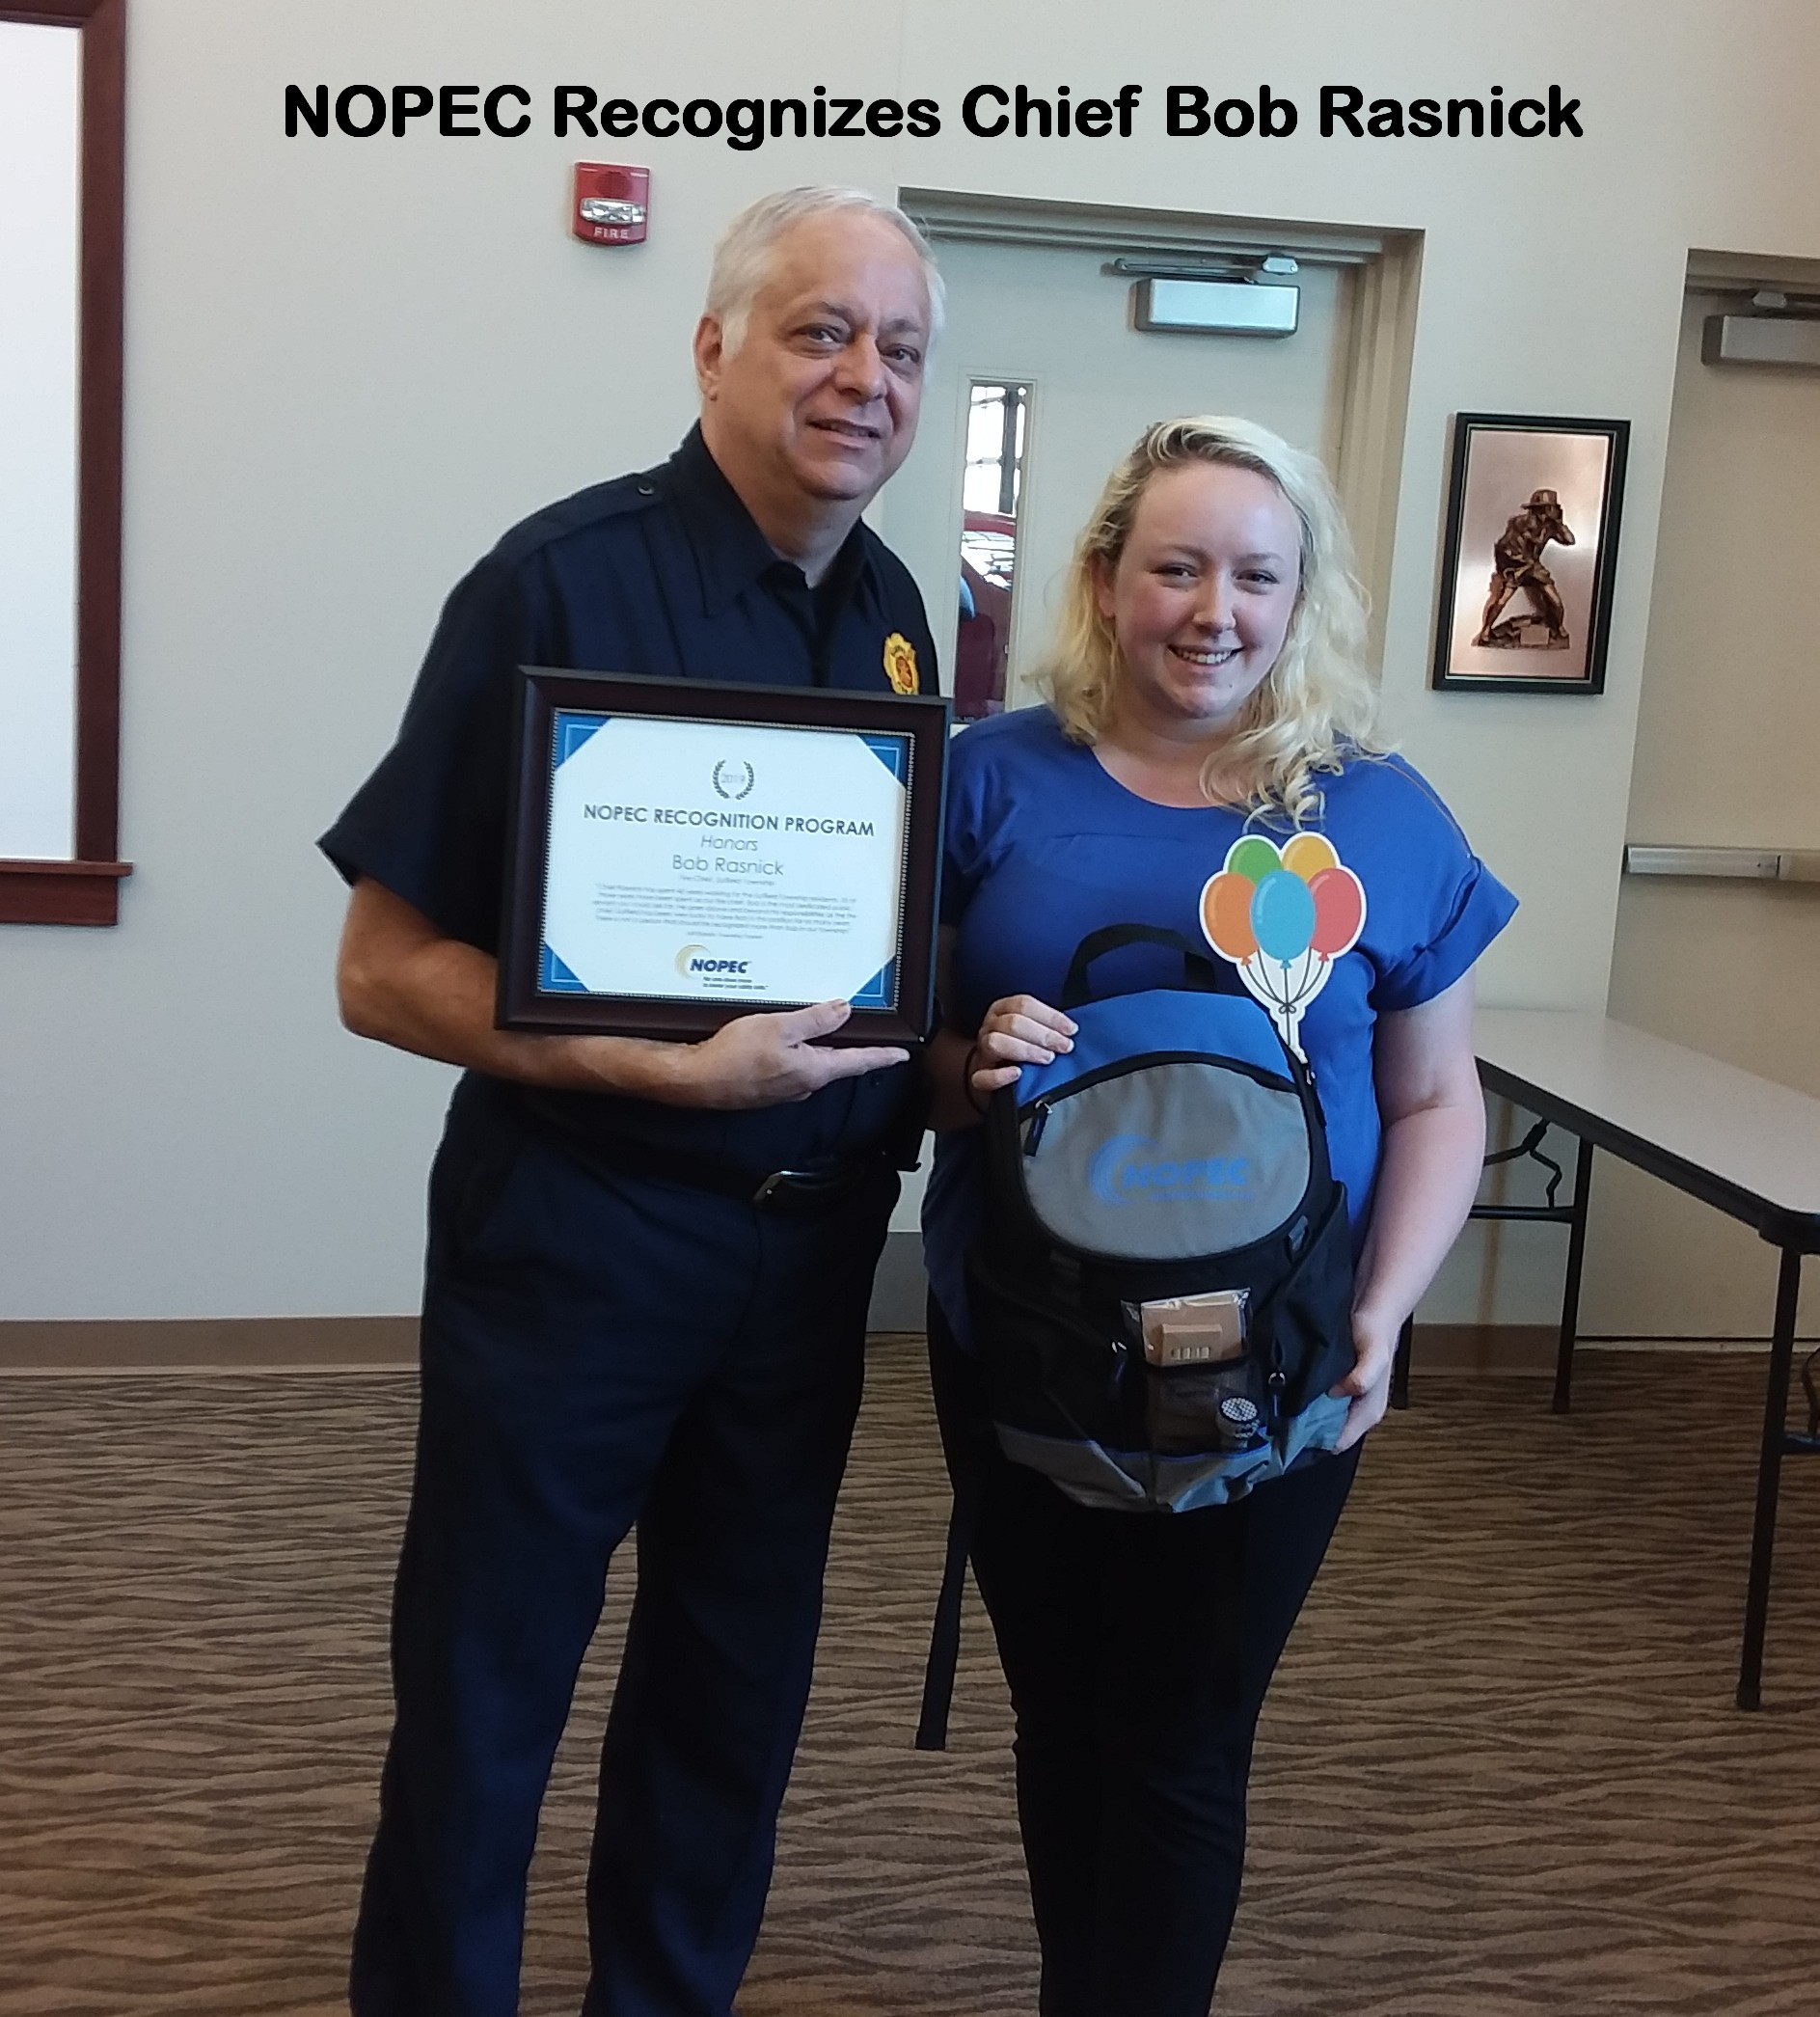 Nopec Recognizes Bob Rasnick 07 23 2019